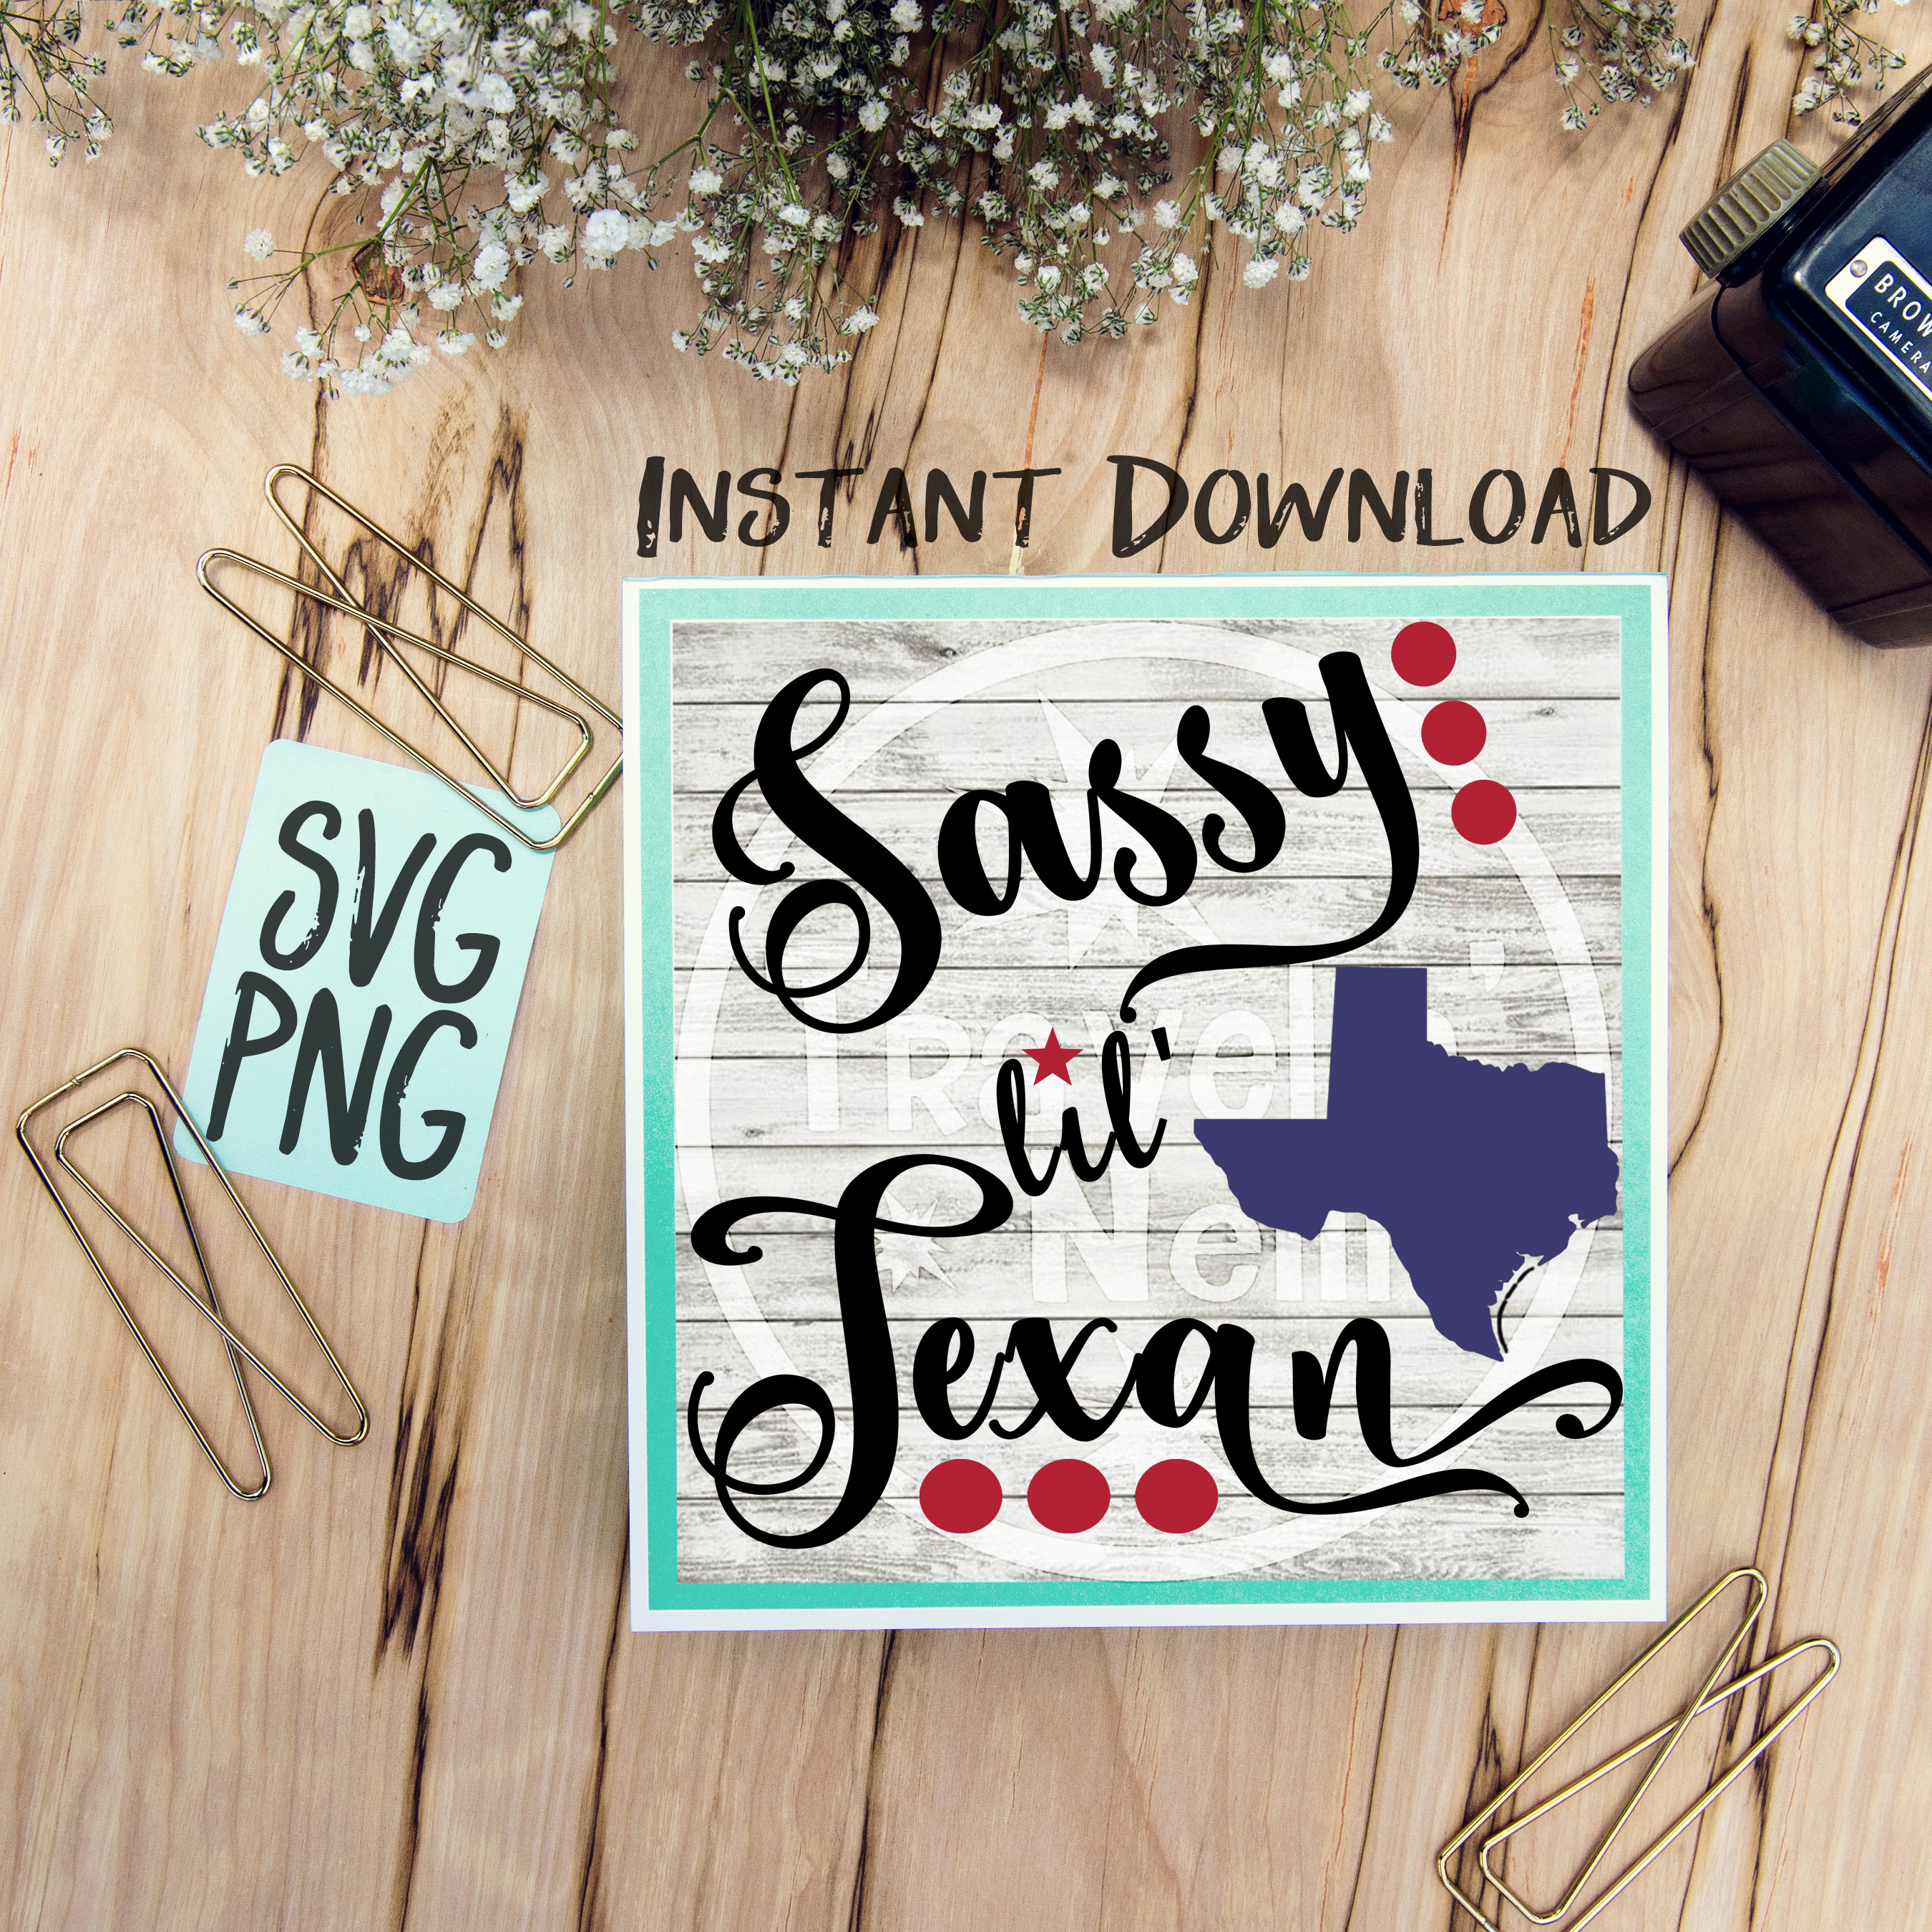 Sassy Lil Texan SVG PNG Image Design for Vinyl Cutters Print DIY Shirt Design Cruise Vacation Anchor Brother Cricut Cameo Cutout example image 1